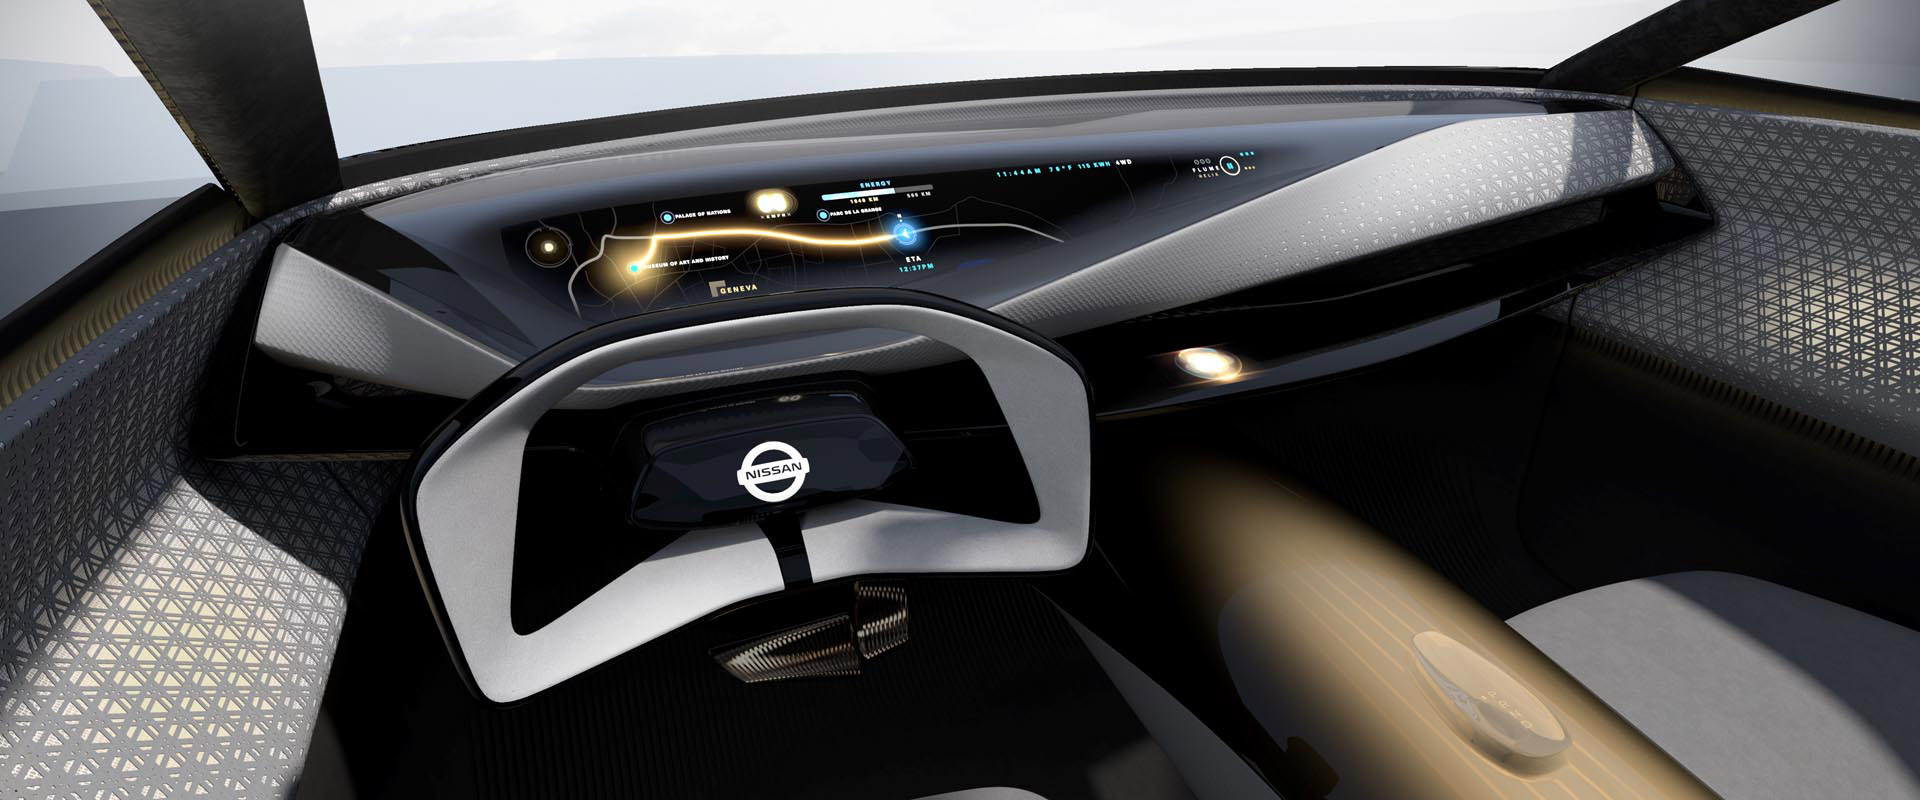 IMQ Concept car Interior 20 source